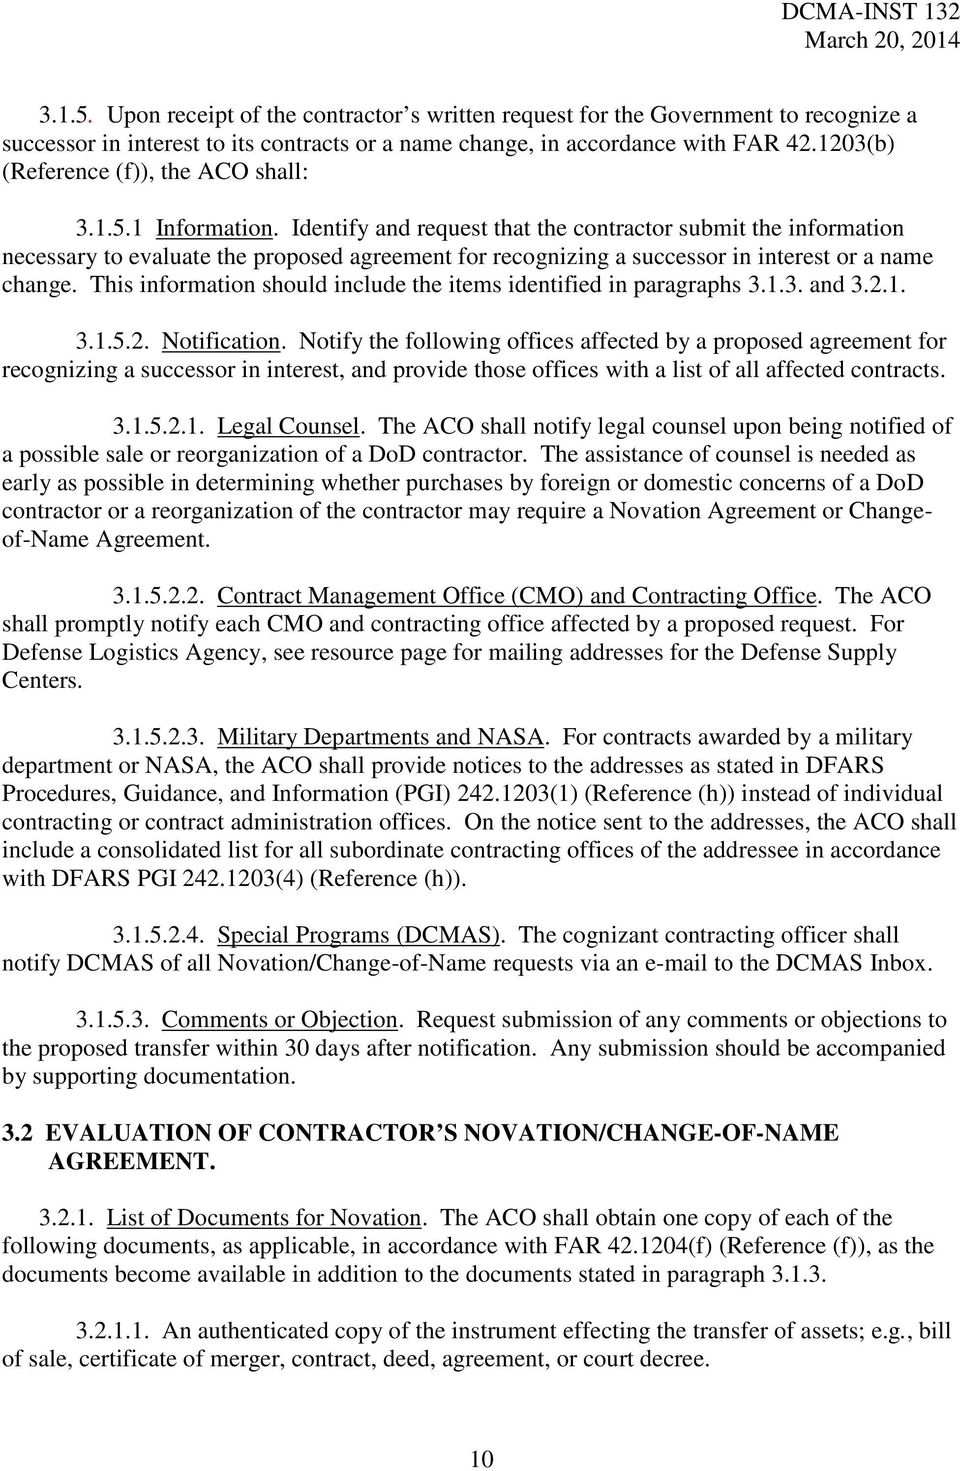 Department Of Defense Defense Contract Management Agency Instruction